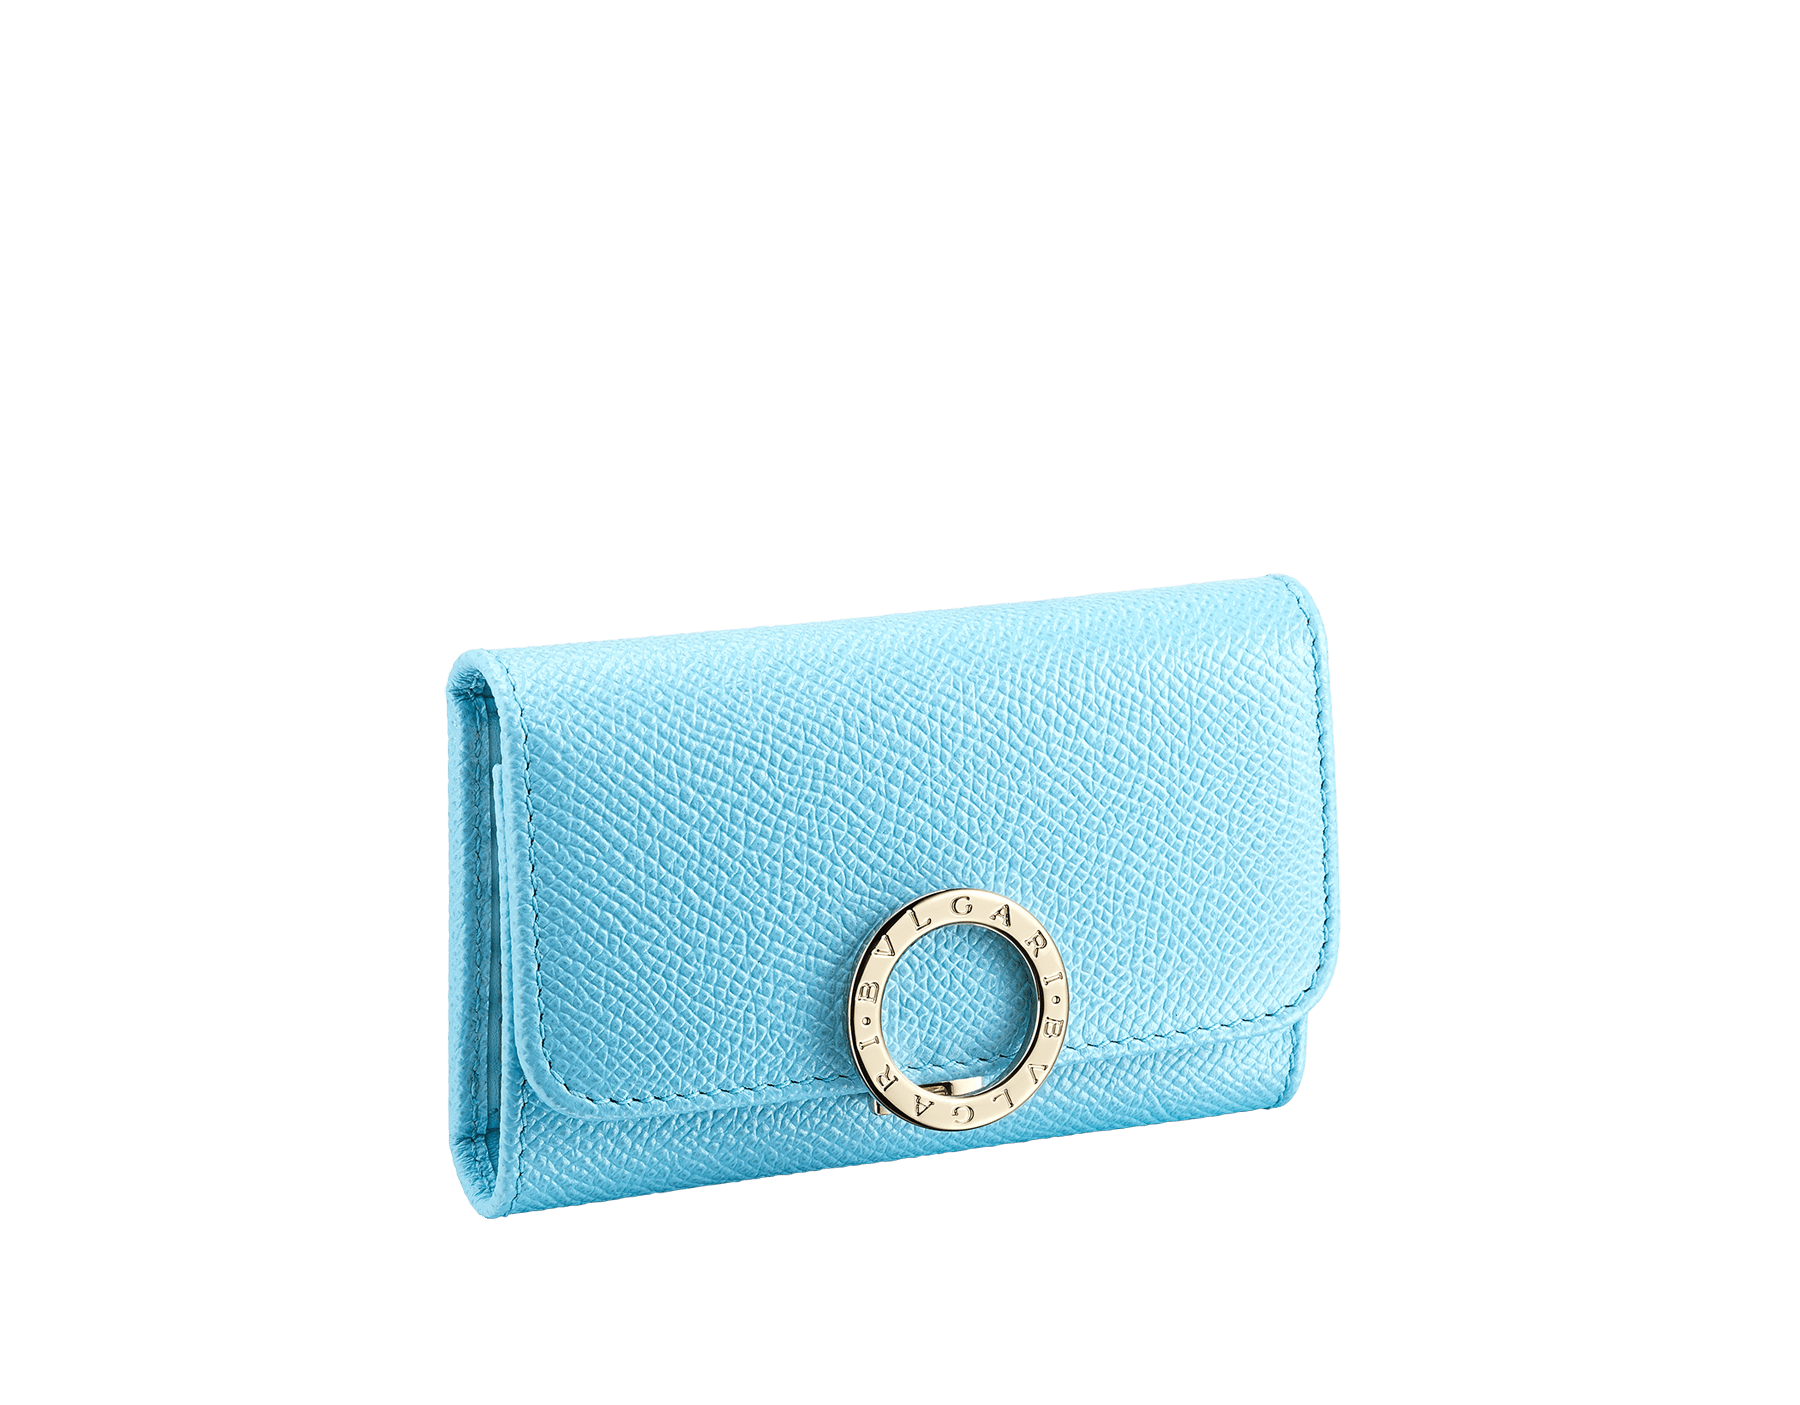 """BVLGARI BVLGARI"" small key holder in light, bright Aegean Topaz blue grained calfskin and light Aegean Topaz blue nappa leather. Iconic logo clip closure in light gold-plated brass. 579-KEYHOLDER-Sc image 1"